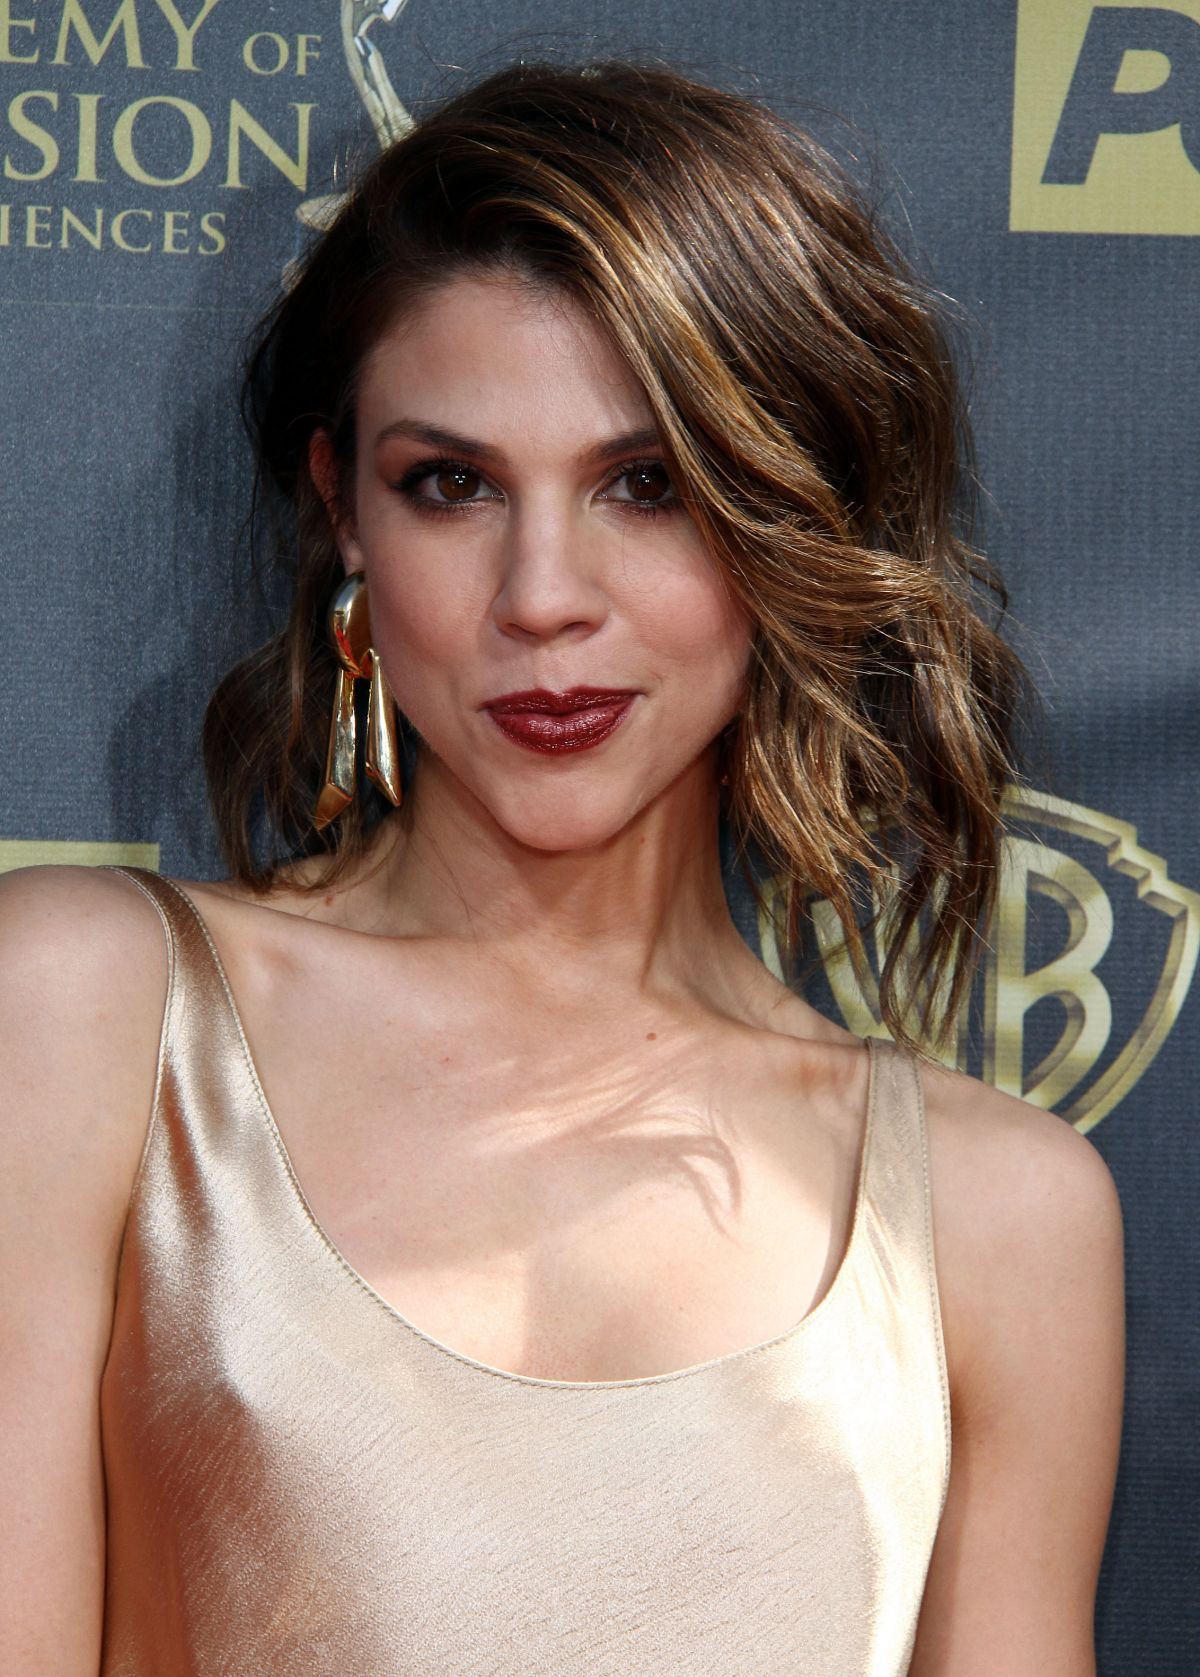 Discussion on this topic: Ann Gillis, kate-mansi/